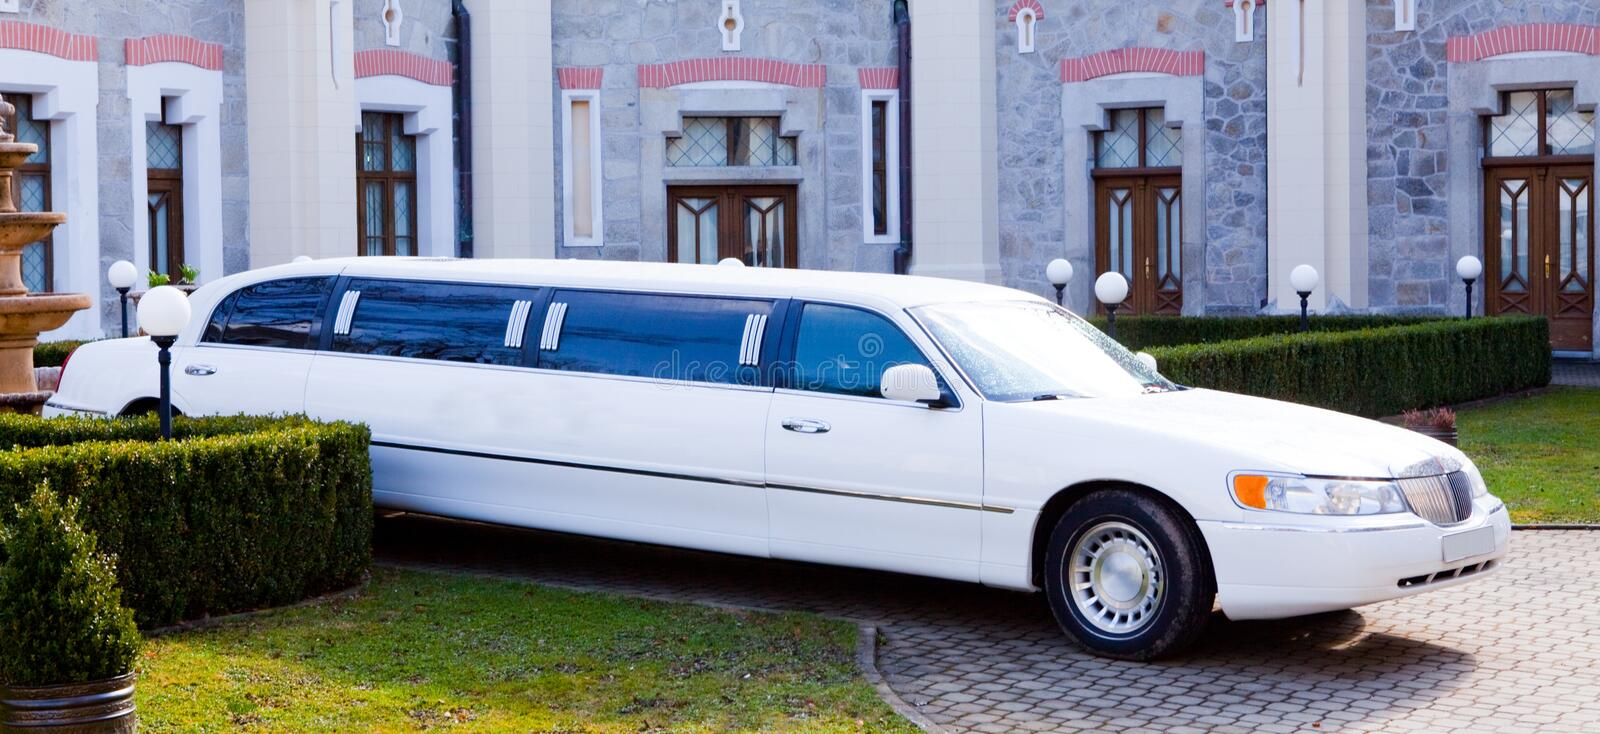 A white limousine royalty free stock image